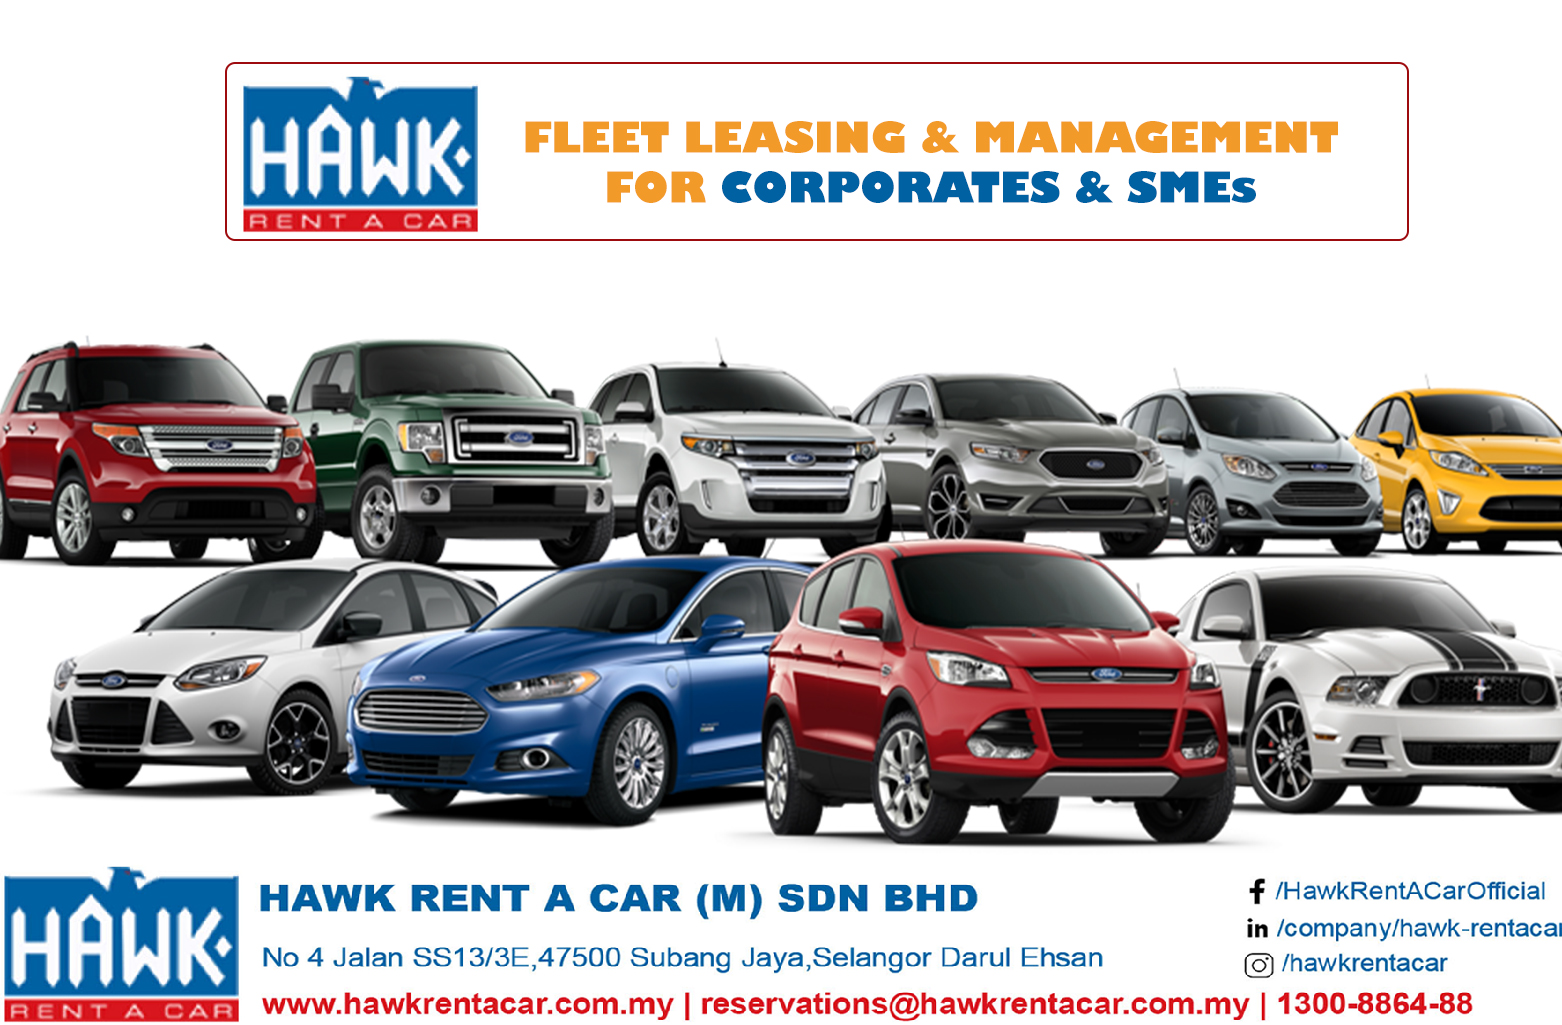 Fleet Leasing & Management for Corporates & SMEs-HAWK Rent a car